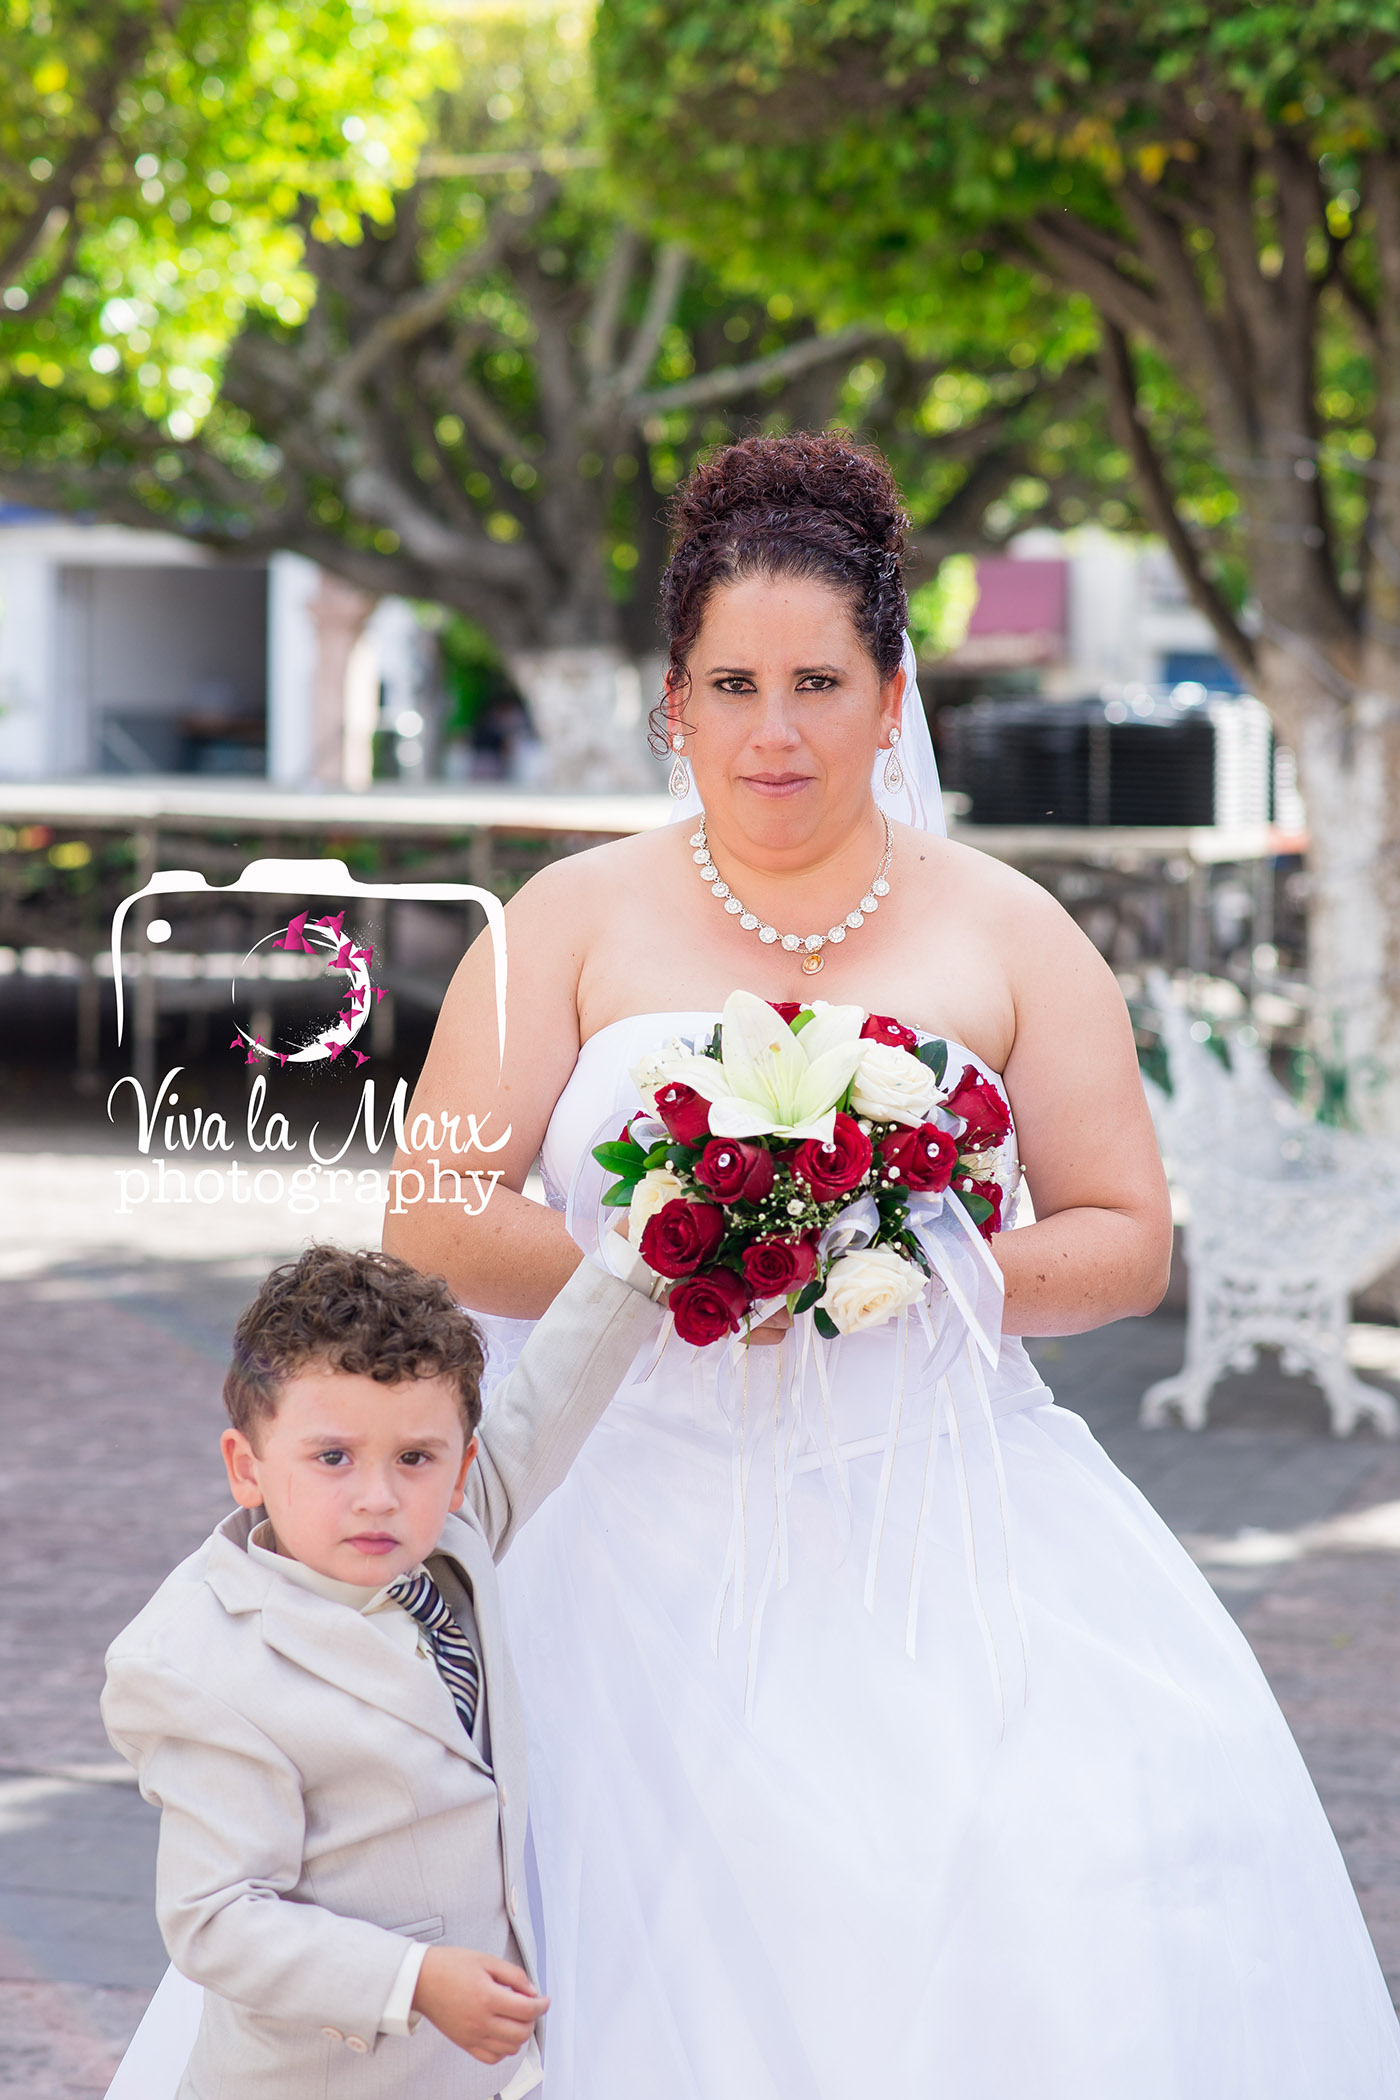 Demetrio, creating memories with mom, that's what it's all about, saving memories to later tell the story.